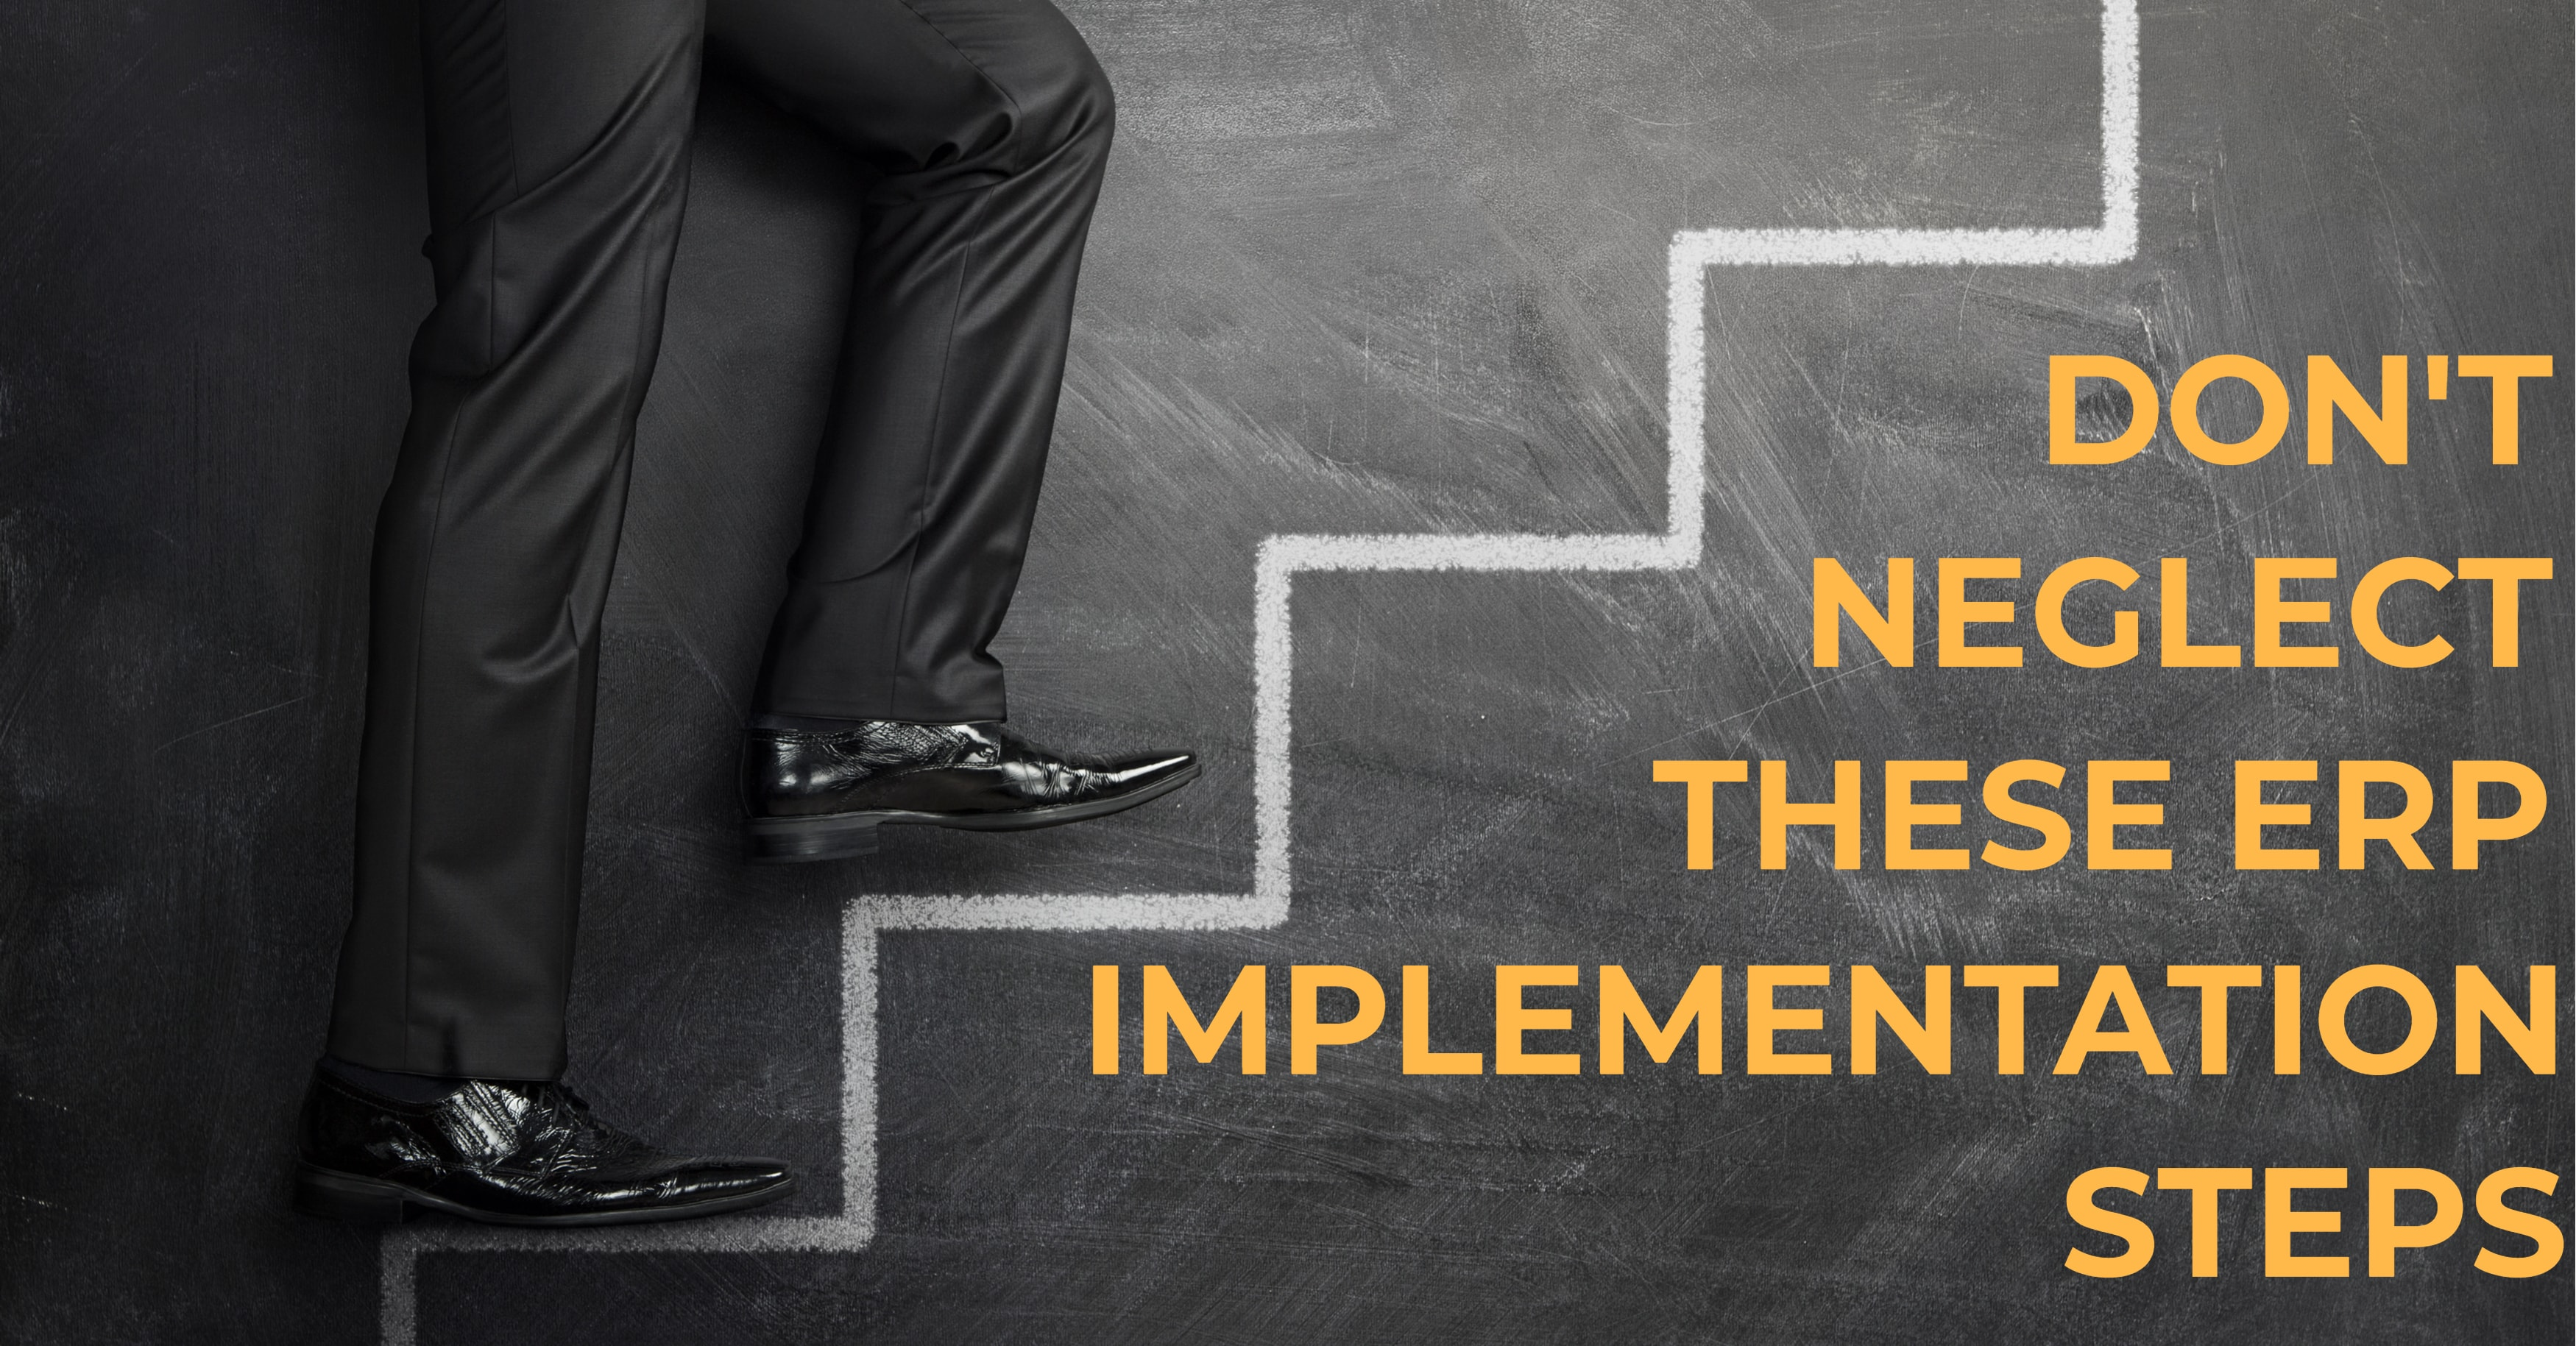 3 Steps Often Left Out of ERP Implementations